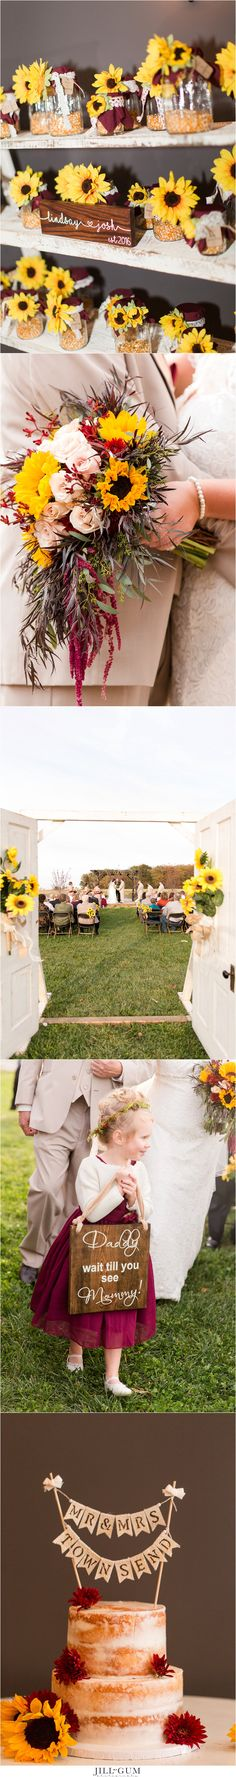 Jill Gum Photography | Fall Wedding | Sunflowers | Reception Details | Outdoor Ceremony | Vintage Doors | Sunflower Reception Decorations | Burgundy and Cream | Fall Colors | IL Wedding Photographer